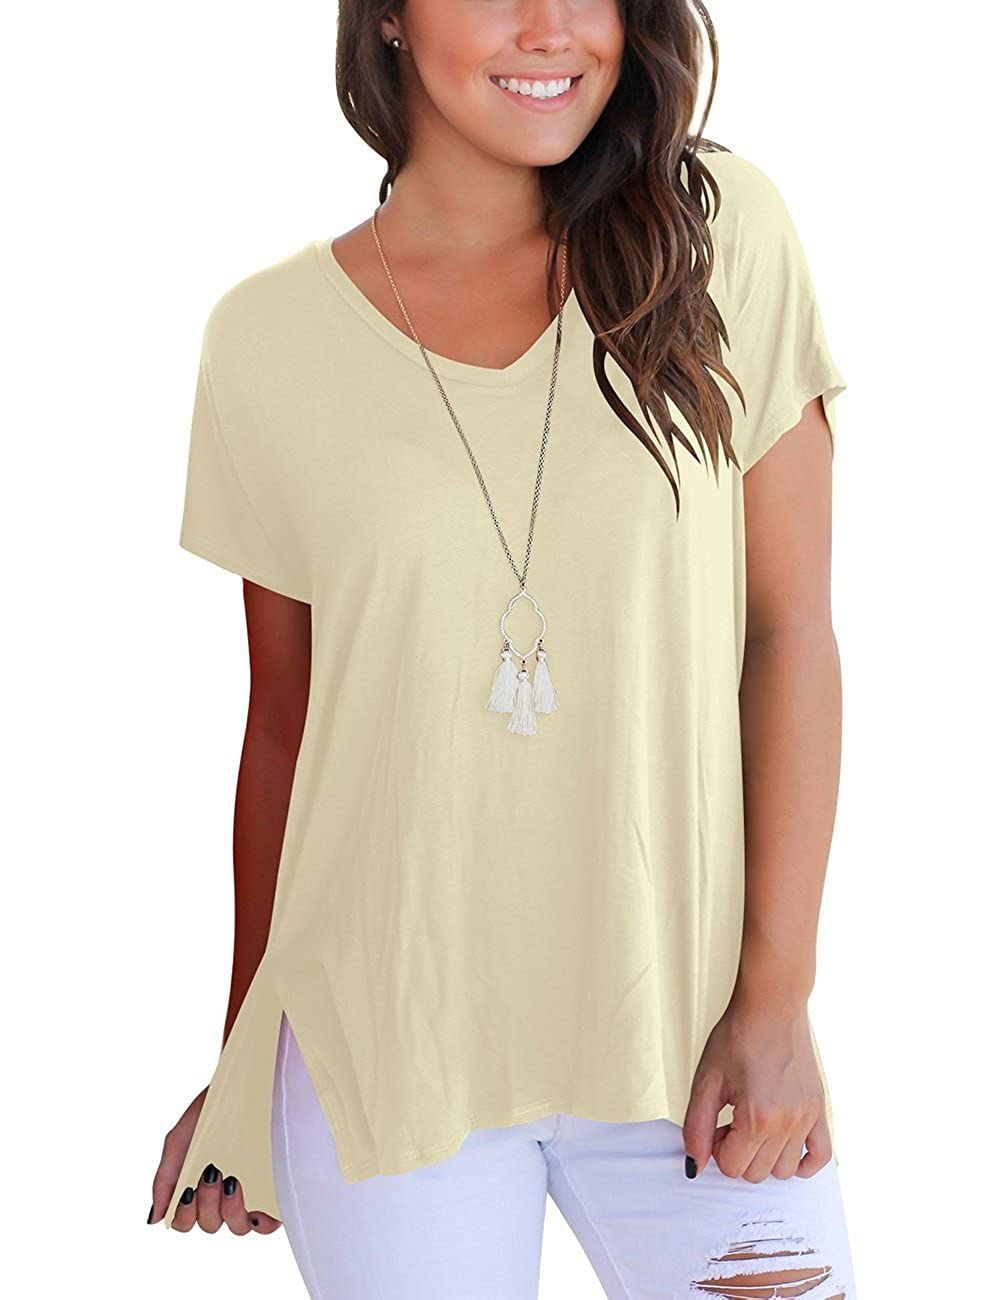 ef3f4129a224 Imported; Pull On closure; V neck, short sleeve, solid, plain, stretchy tee,  jersey top,split in side,high low tshirt., ...